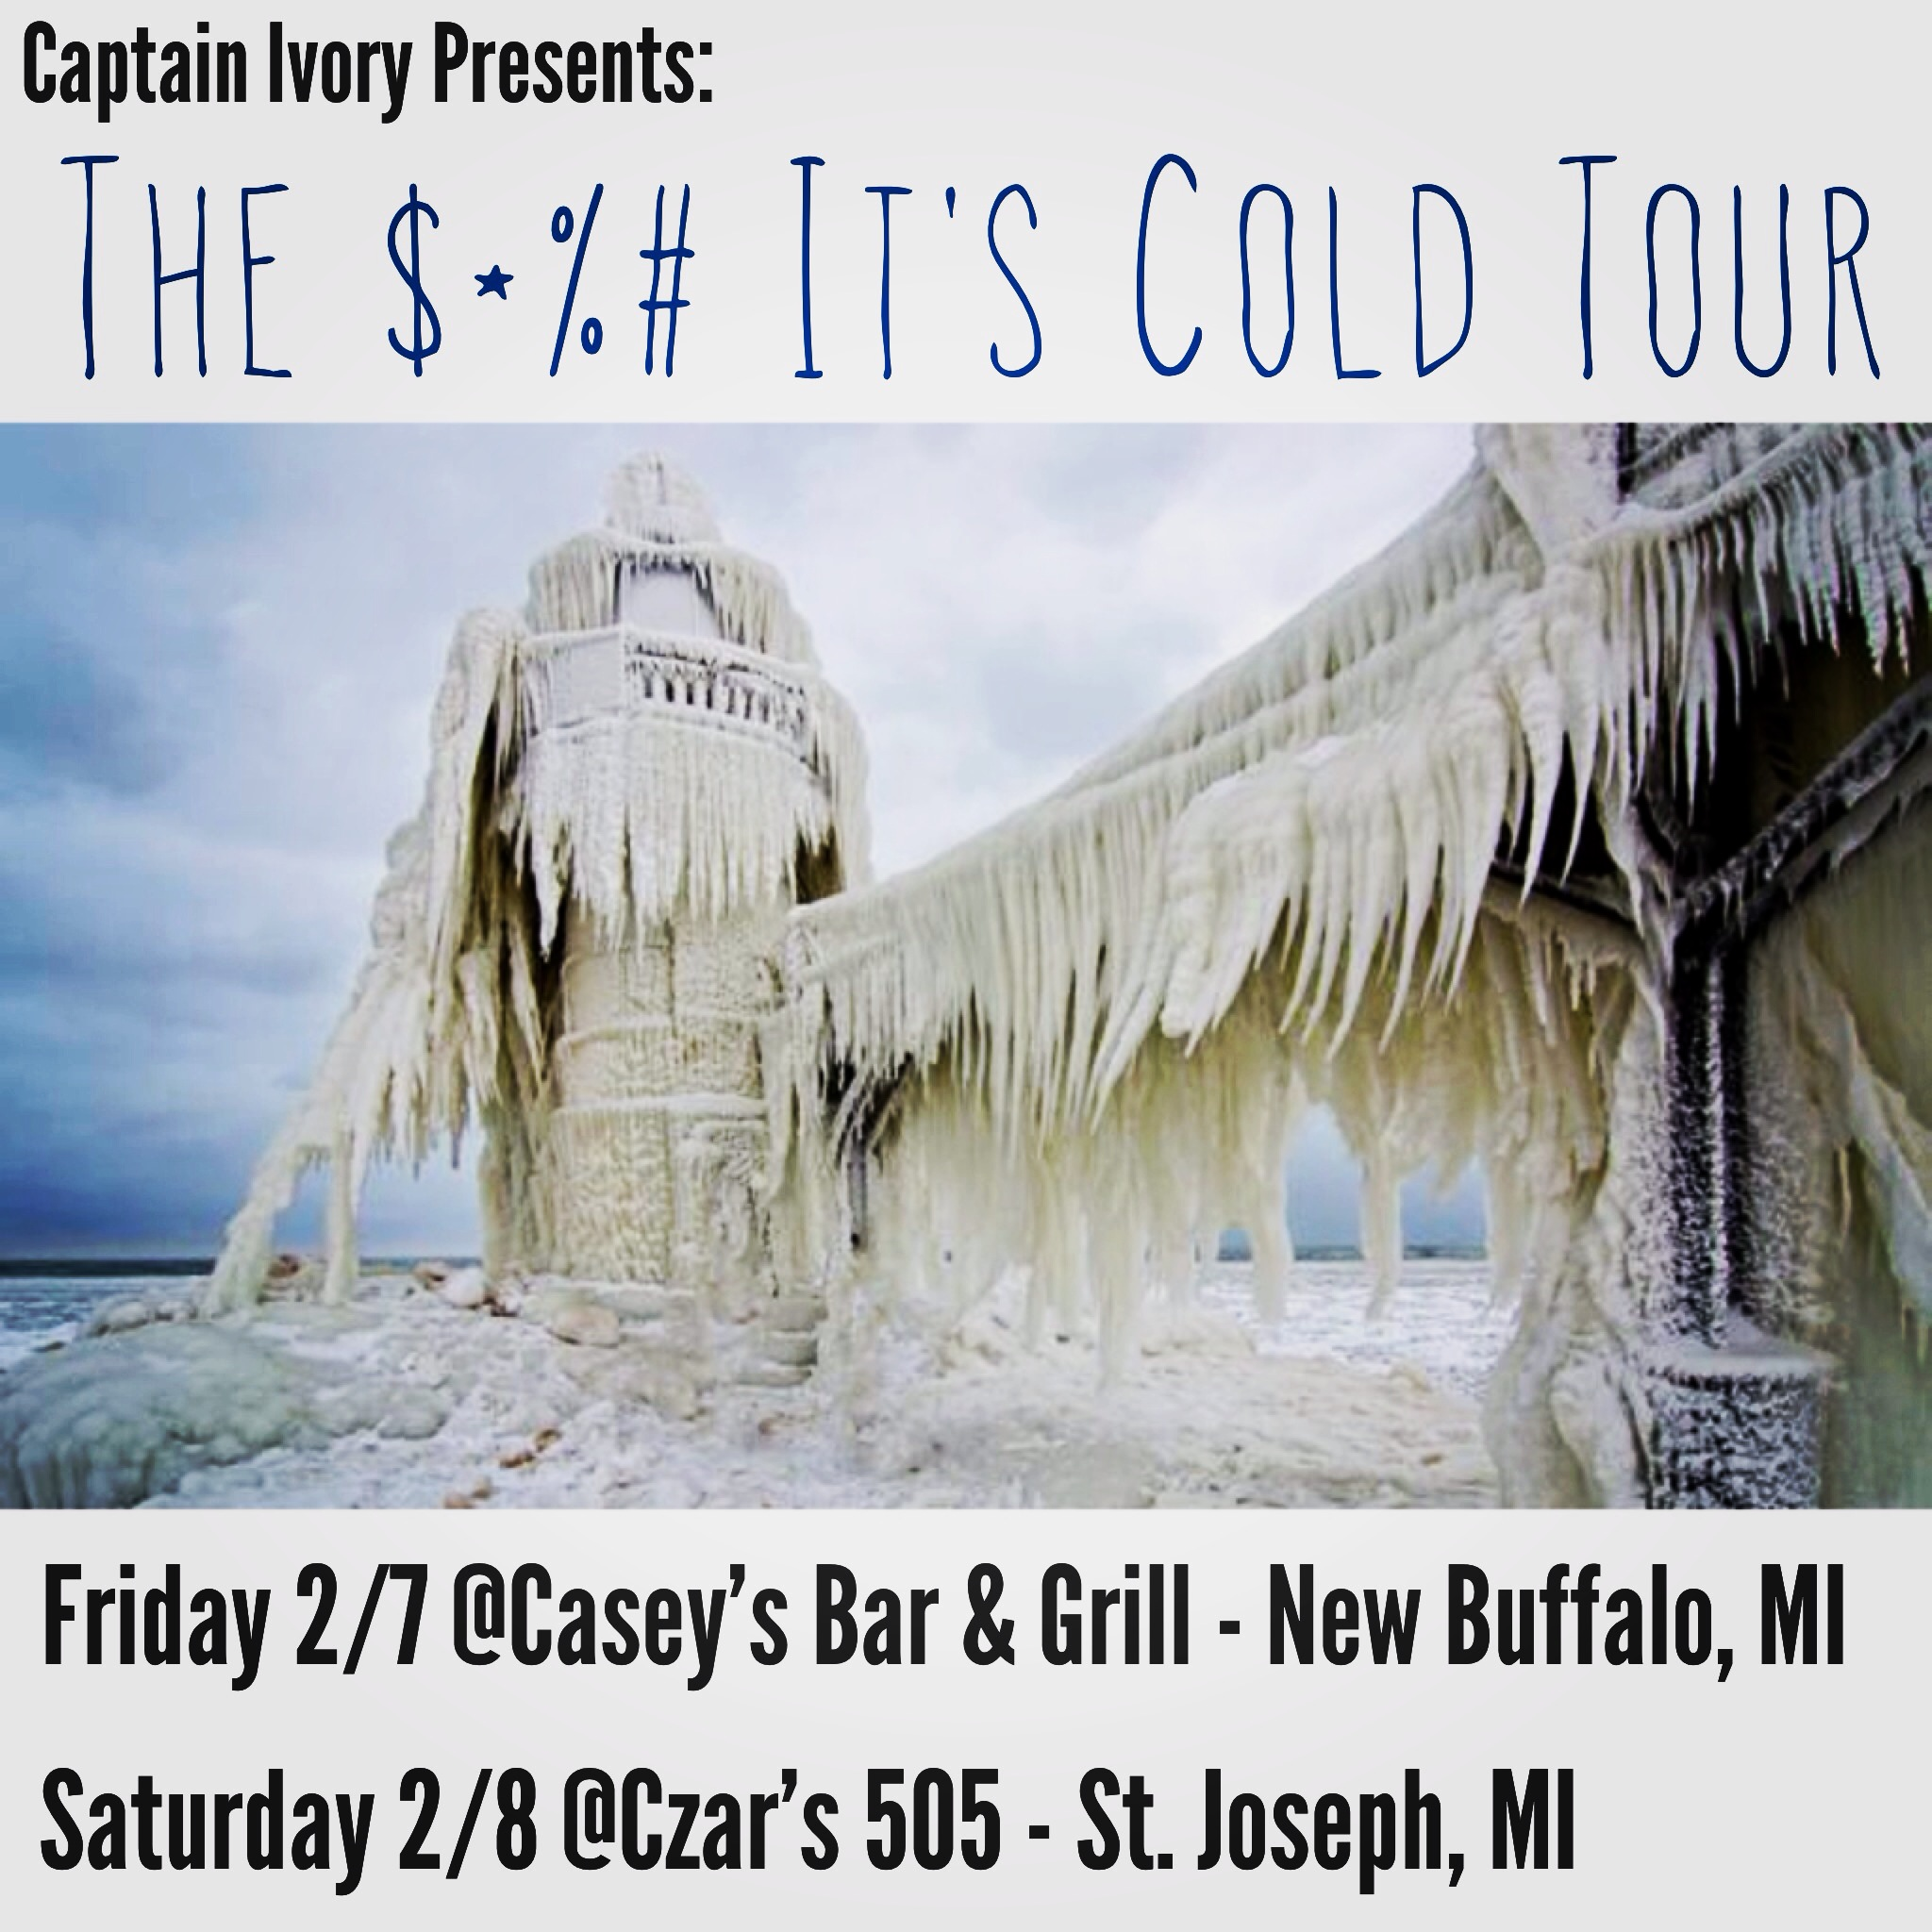 Captain Ivory shit its cold tour